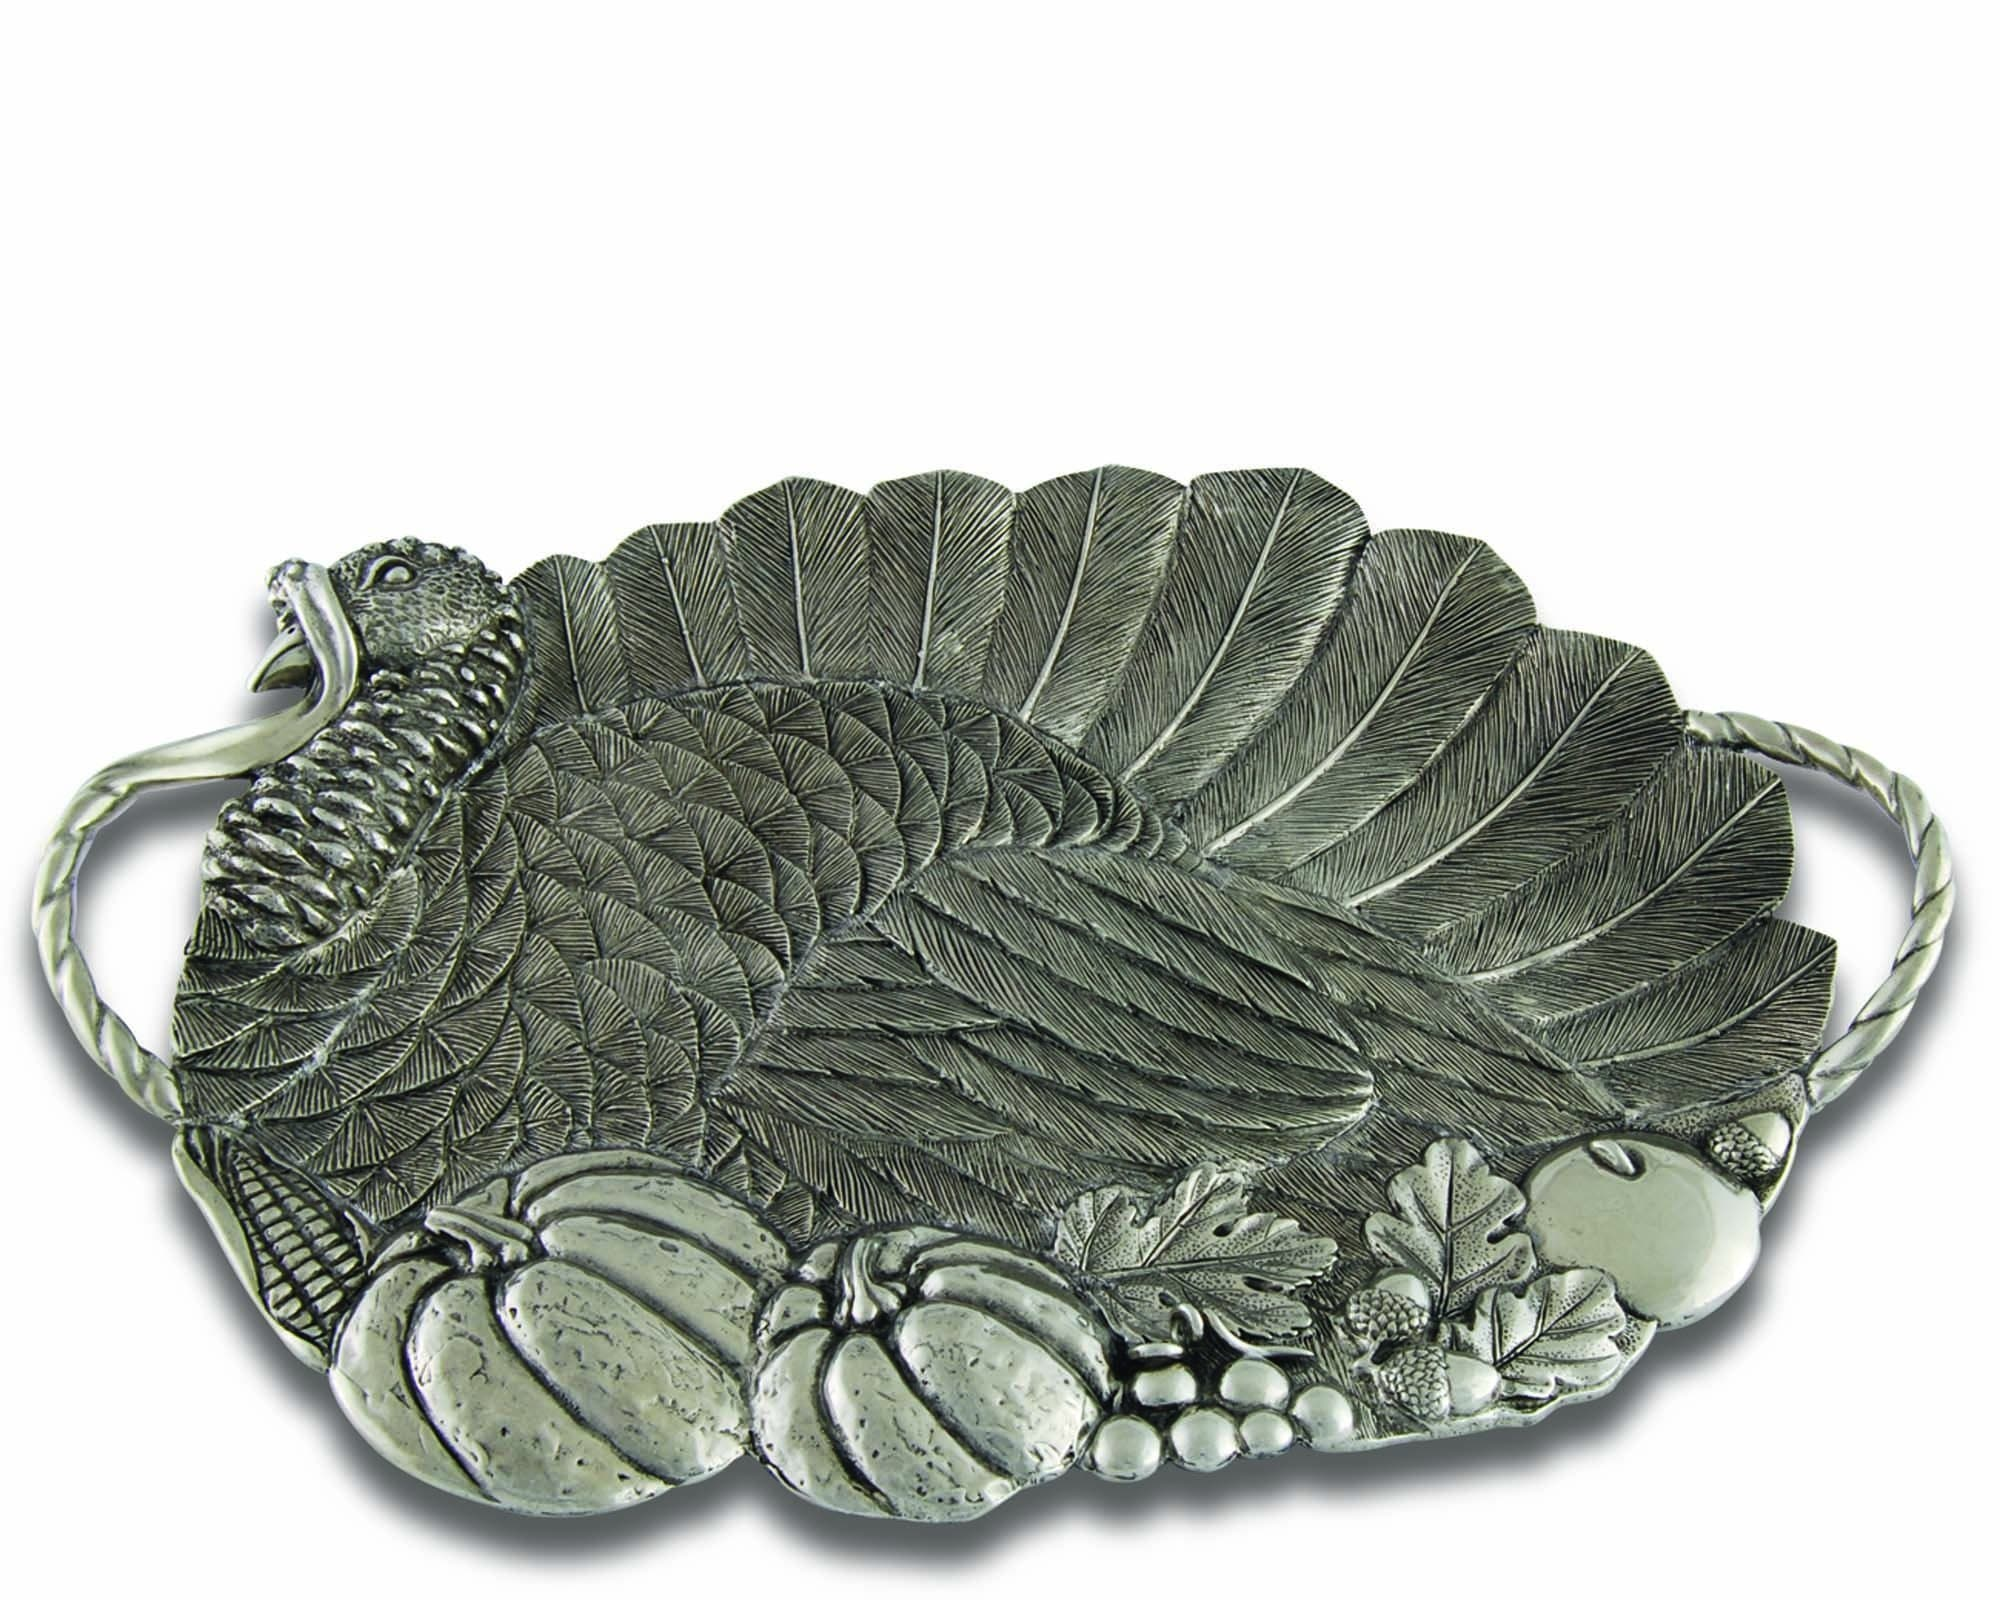 Turkey Serving Tray